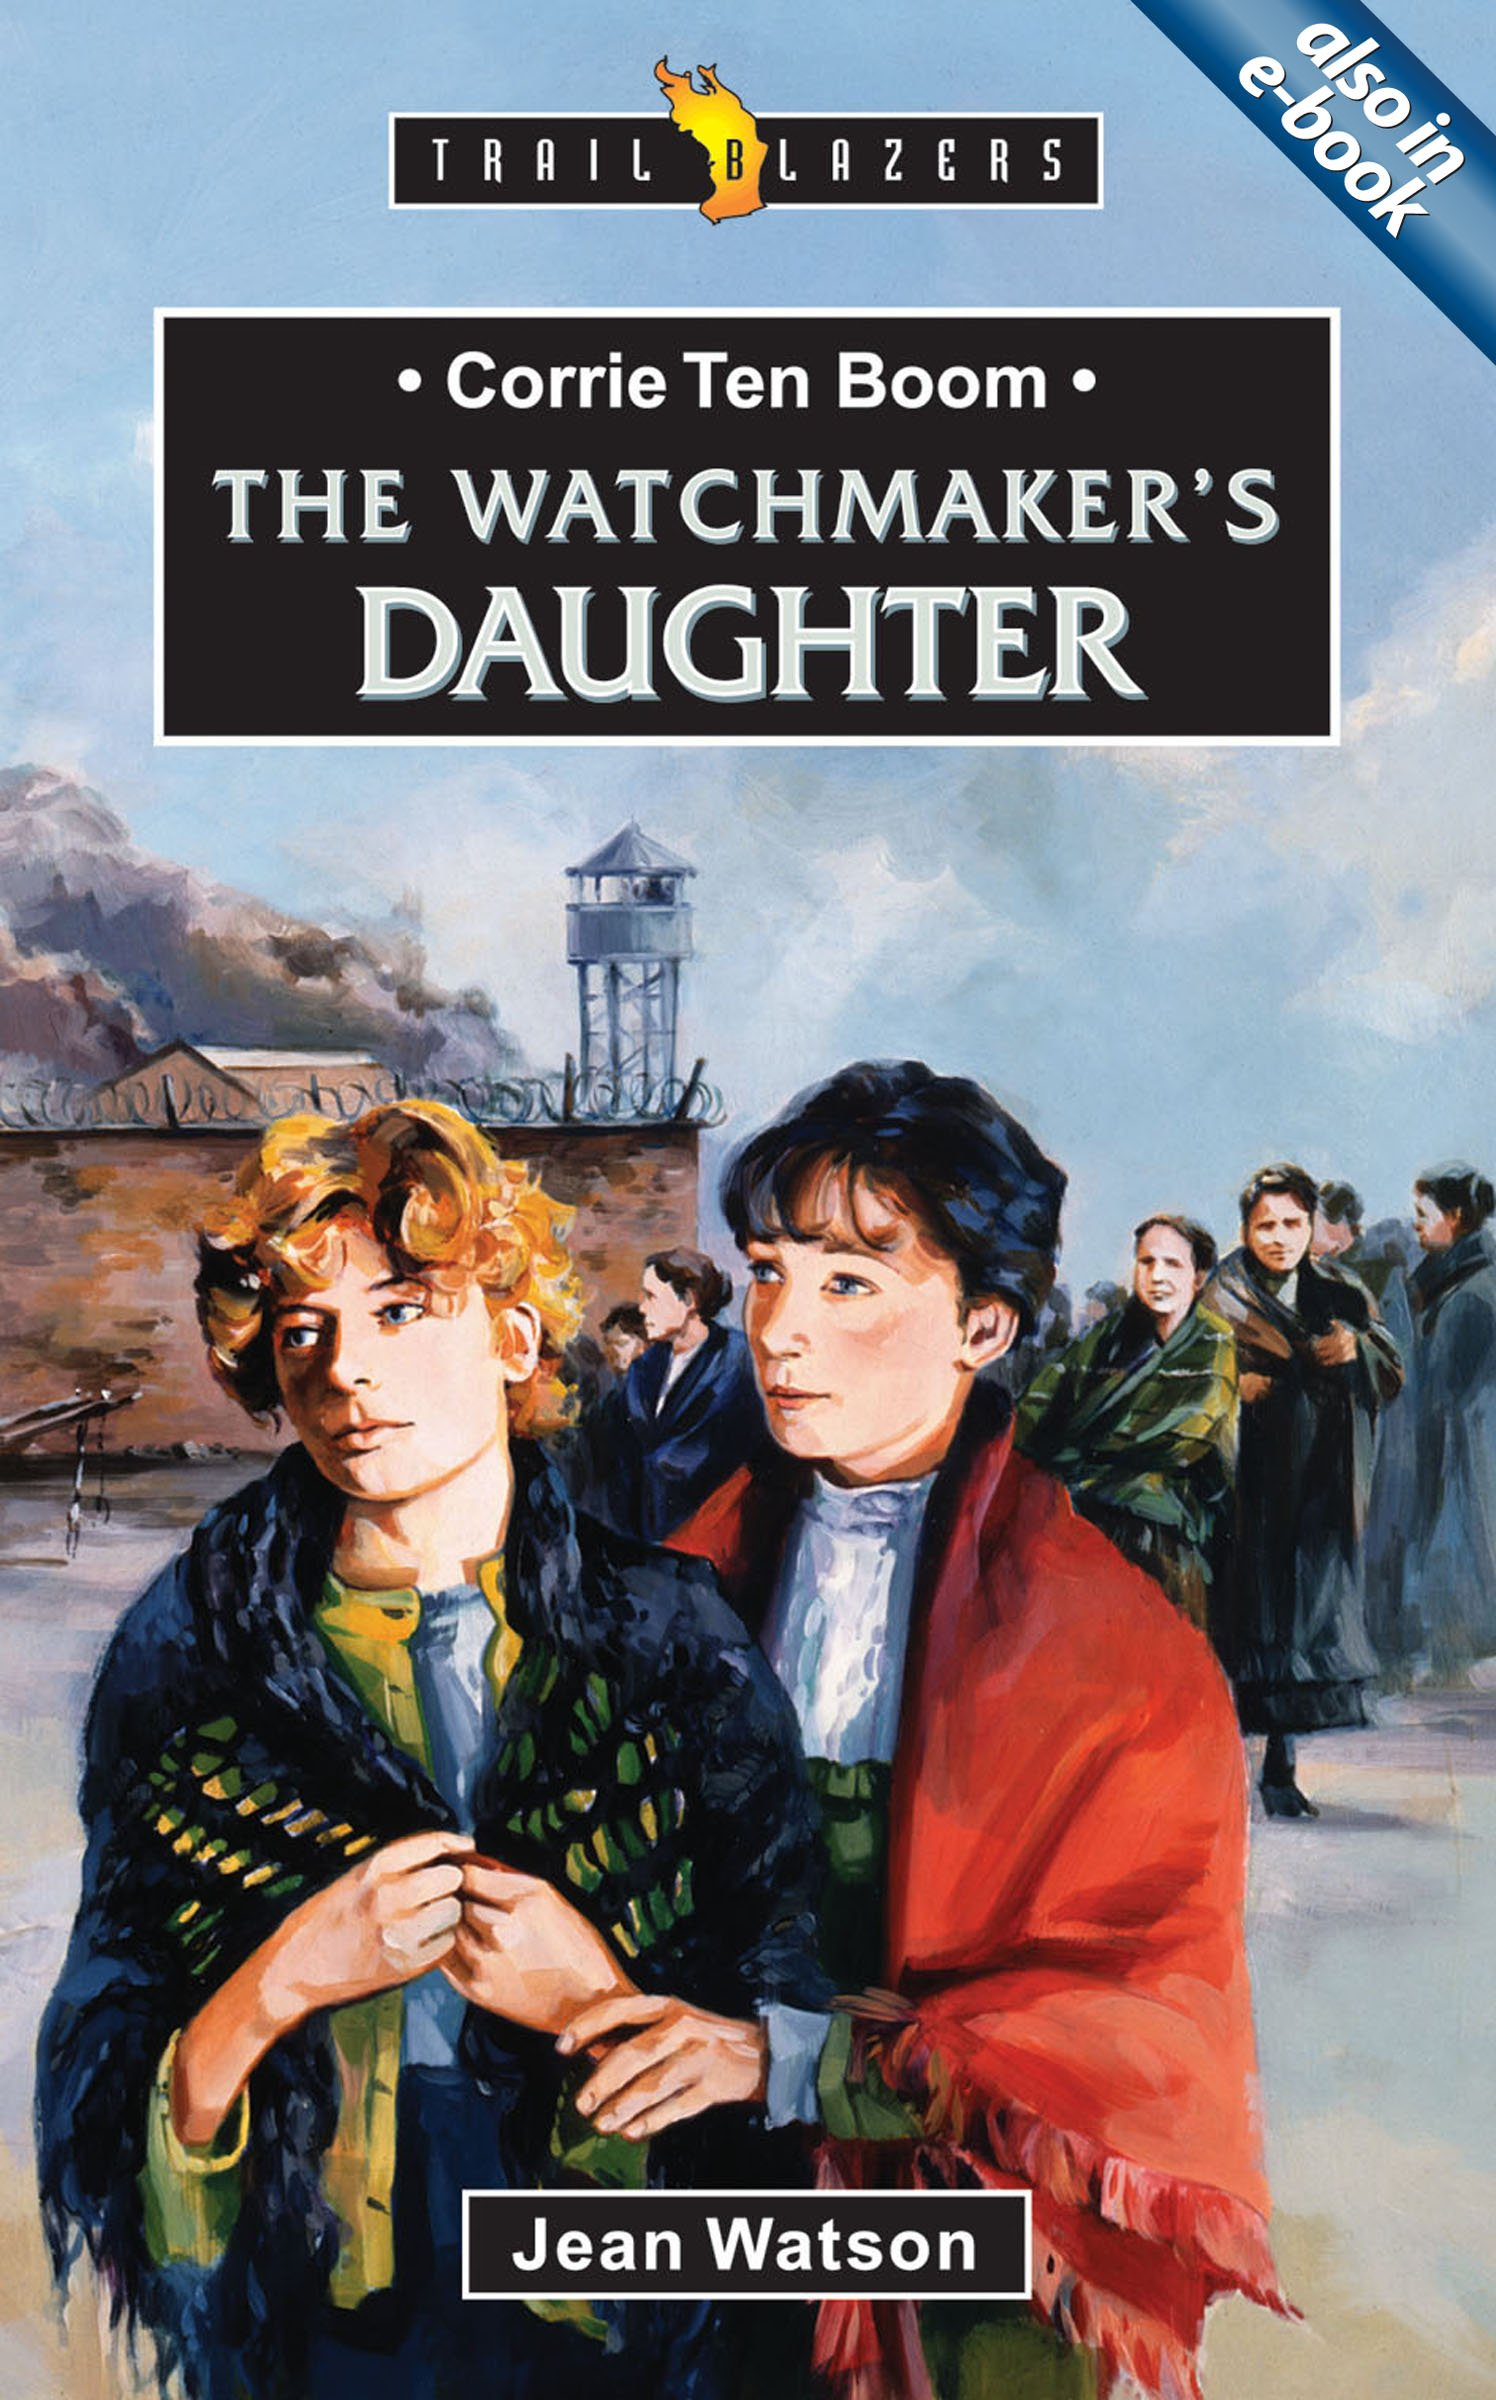 Corrie ten boom the watchmaker s daughter trailblazers jean watson 9781857921168 amazon com books